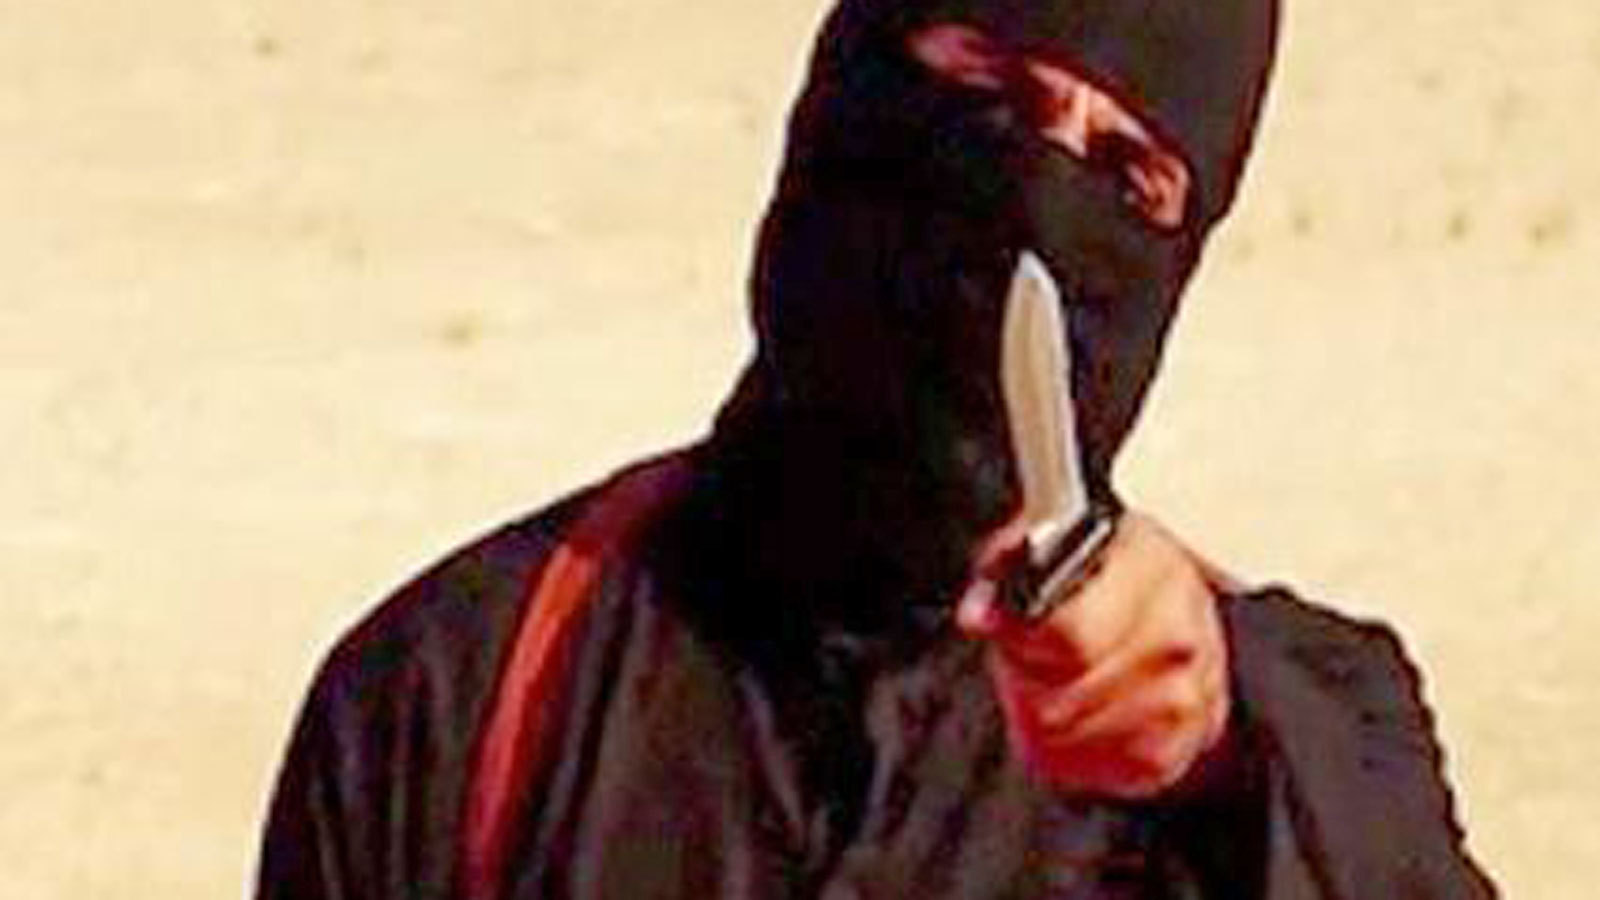 U.S. now 'reasonably certain' drone strike killed 'Jihadi John'